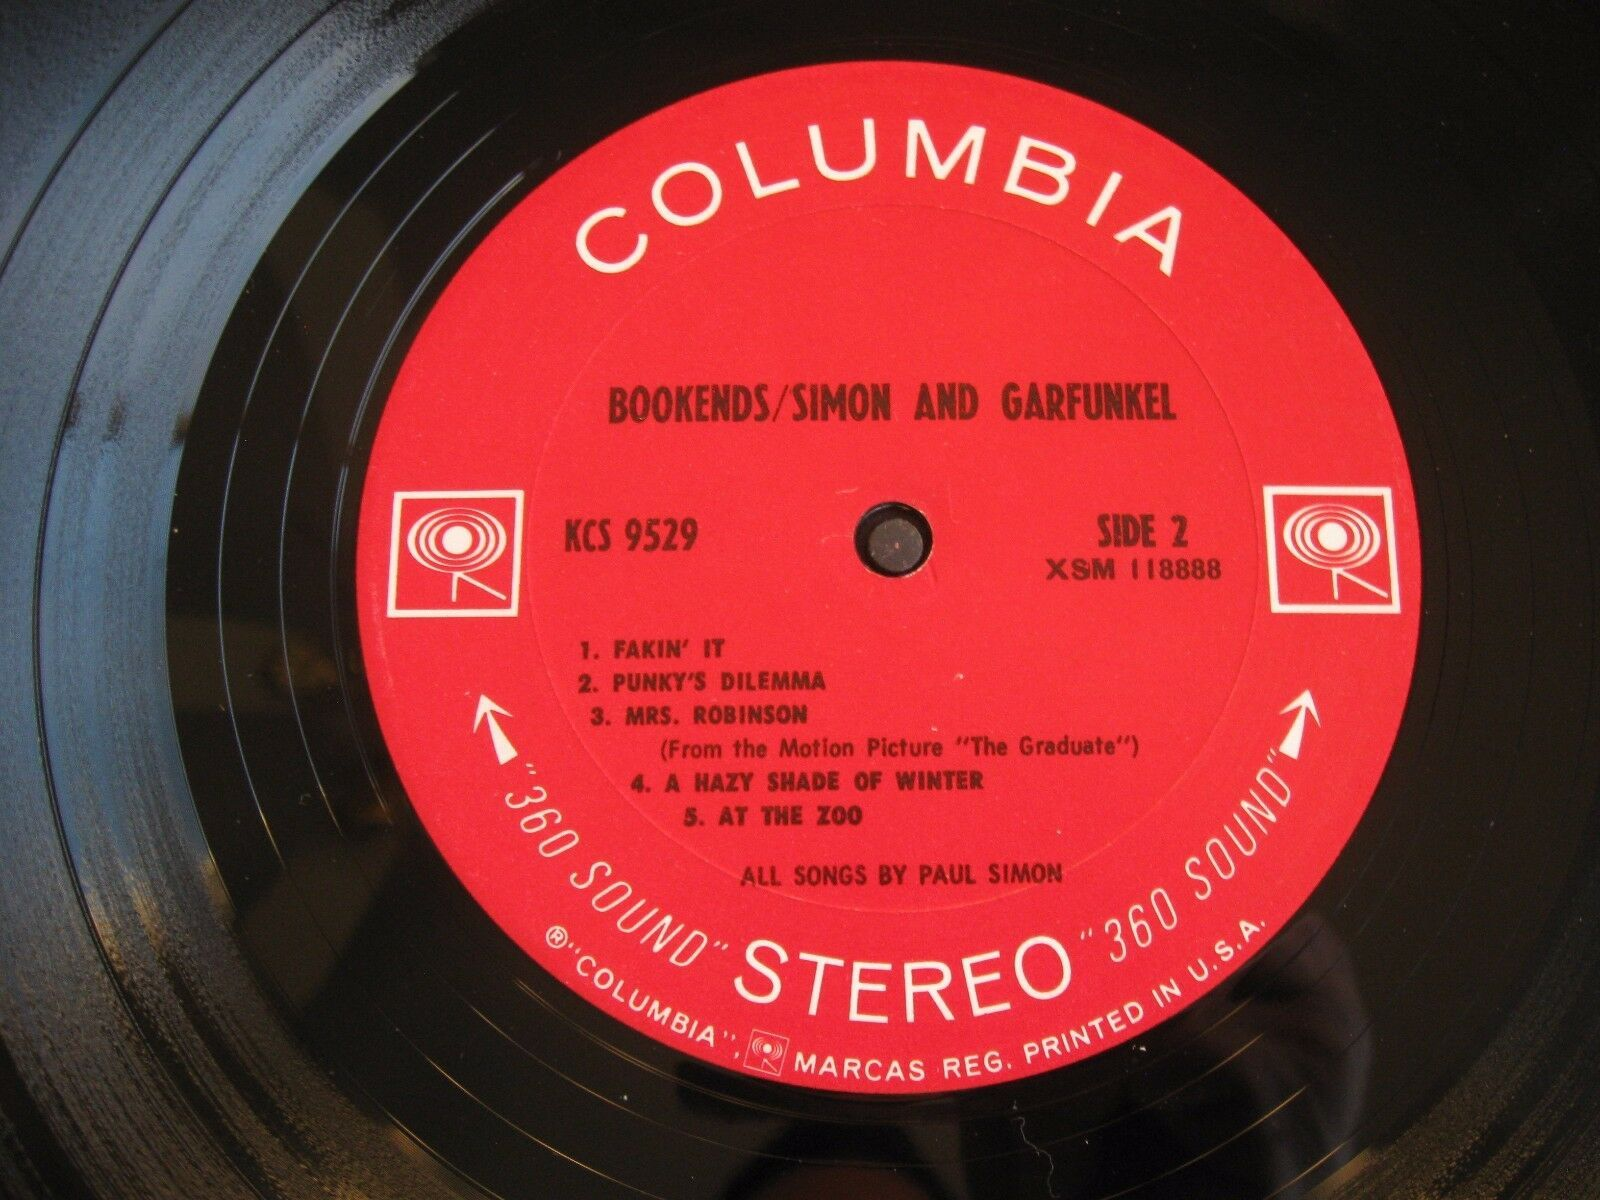 Simon & Garfunkel Bookends Columbia KCS 9529 Stereo 1A First Pressing image 5